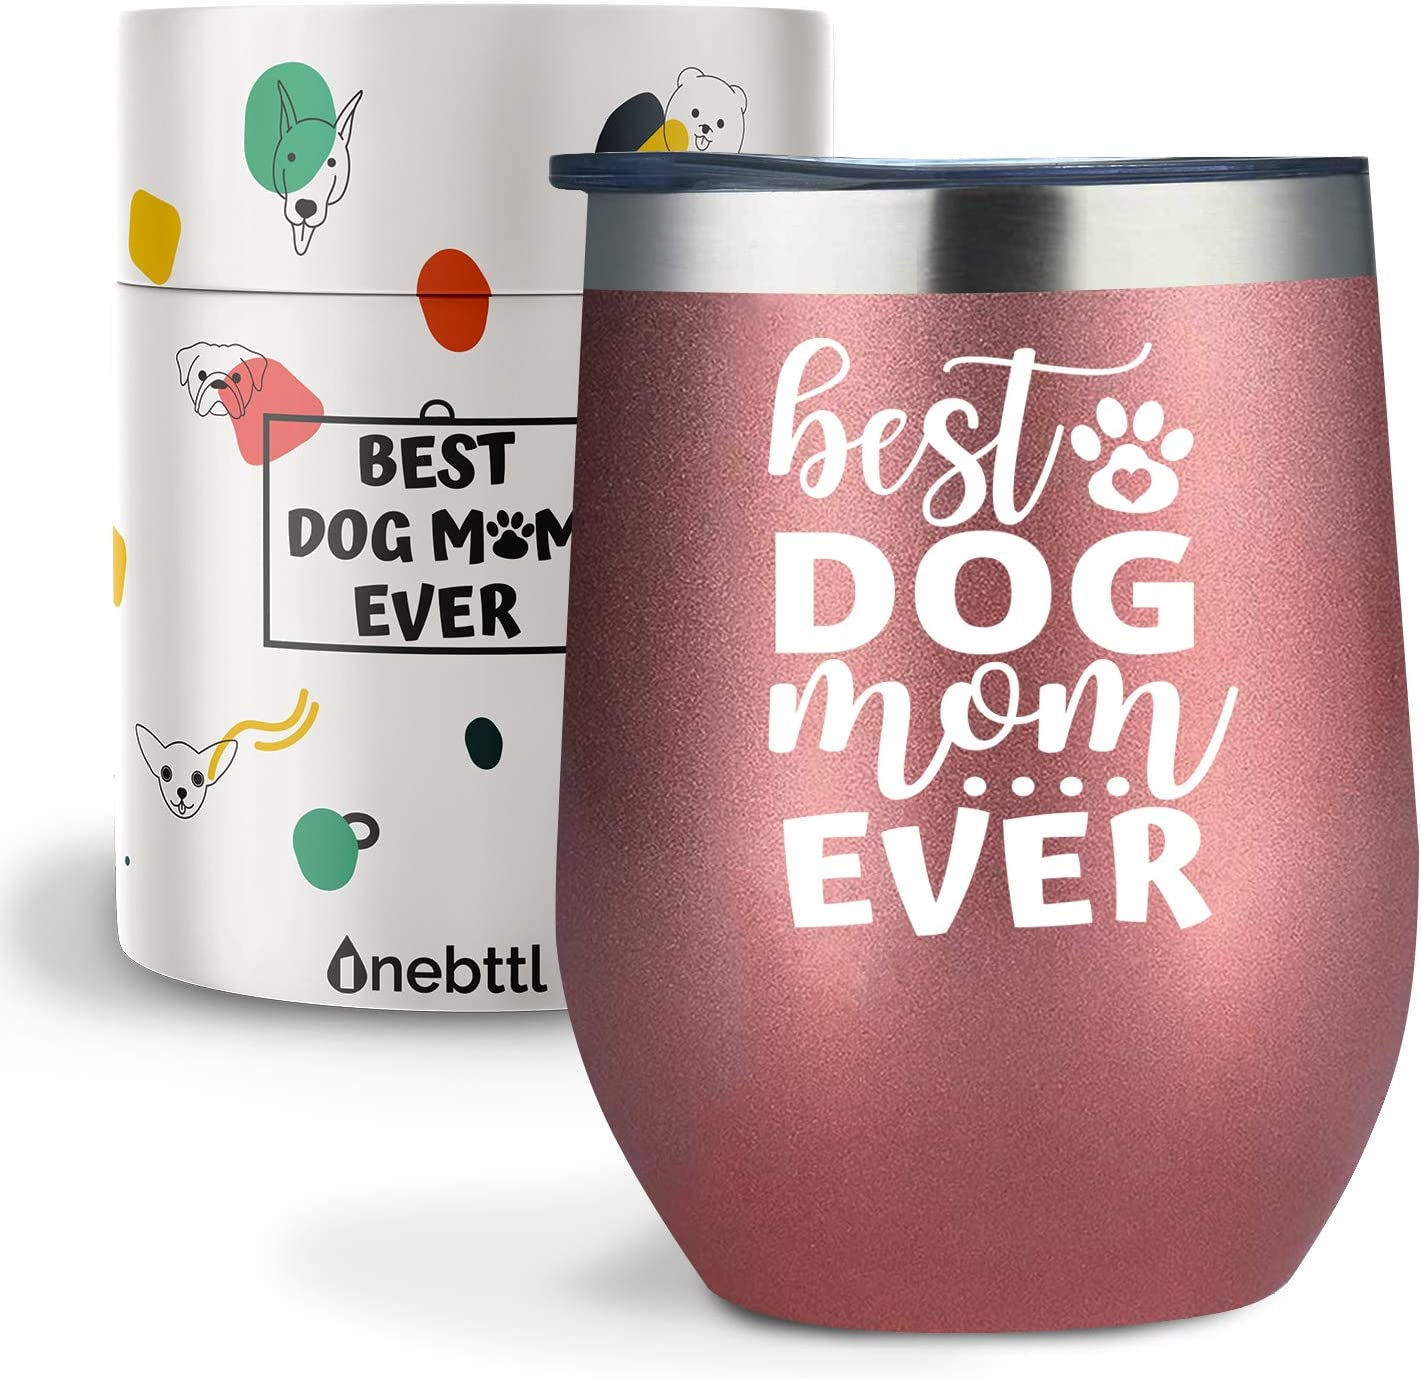 Vet Tech Aunt Funny 12 ounces//340ml Dog Themed Insulated Stainless Steel Tumbler with Lid for Dog Owner Dog Person Onebttl Dog Mom Wine Tumbler Dog Lover Gifts for Women Coworker,Wife,Friends